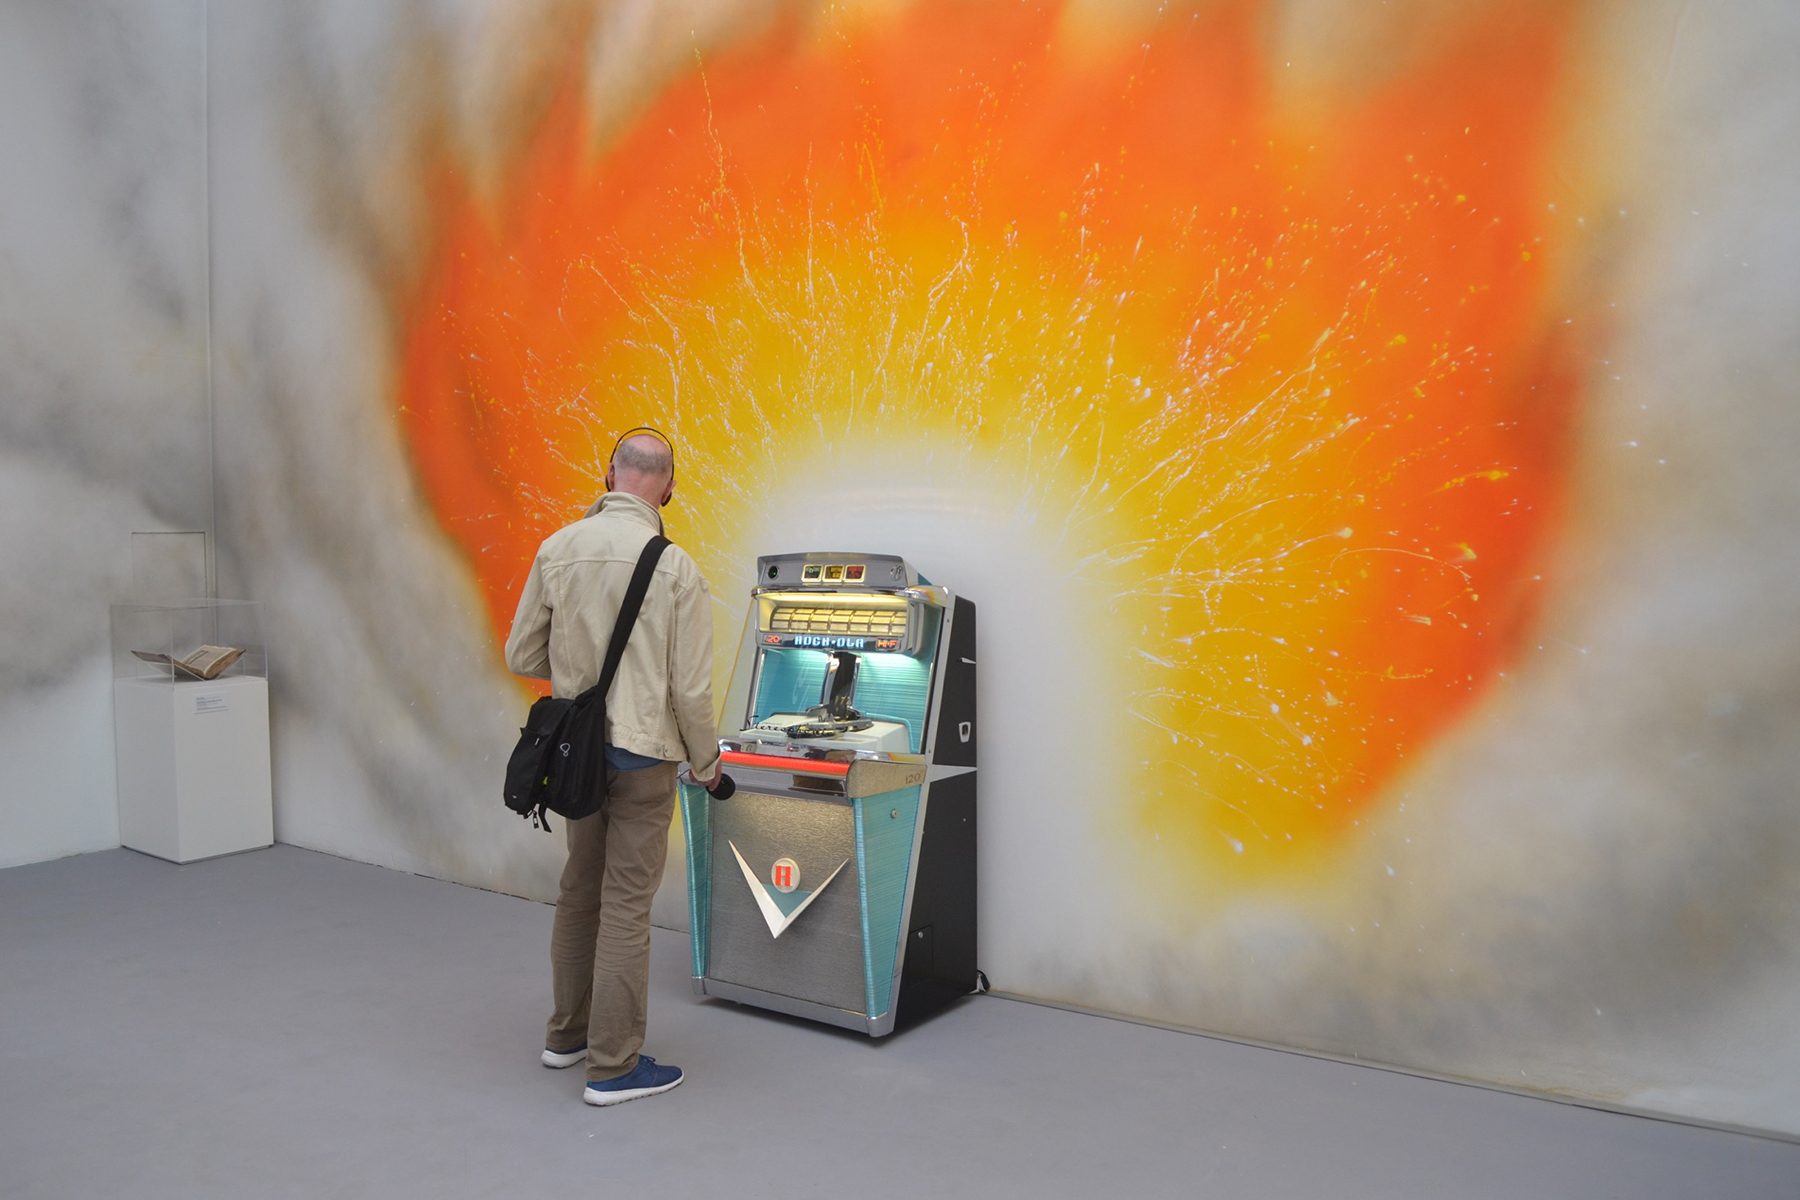 Jeremy Deller's jukebox plays nothing but 7-inch records, which emit factory machine noise.